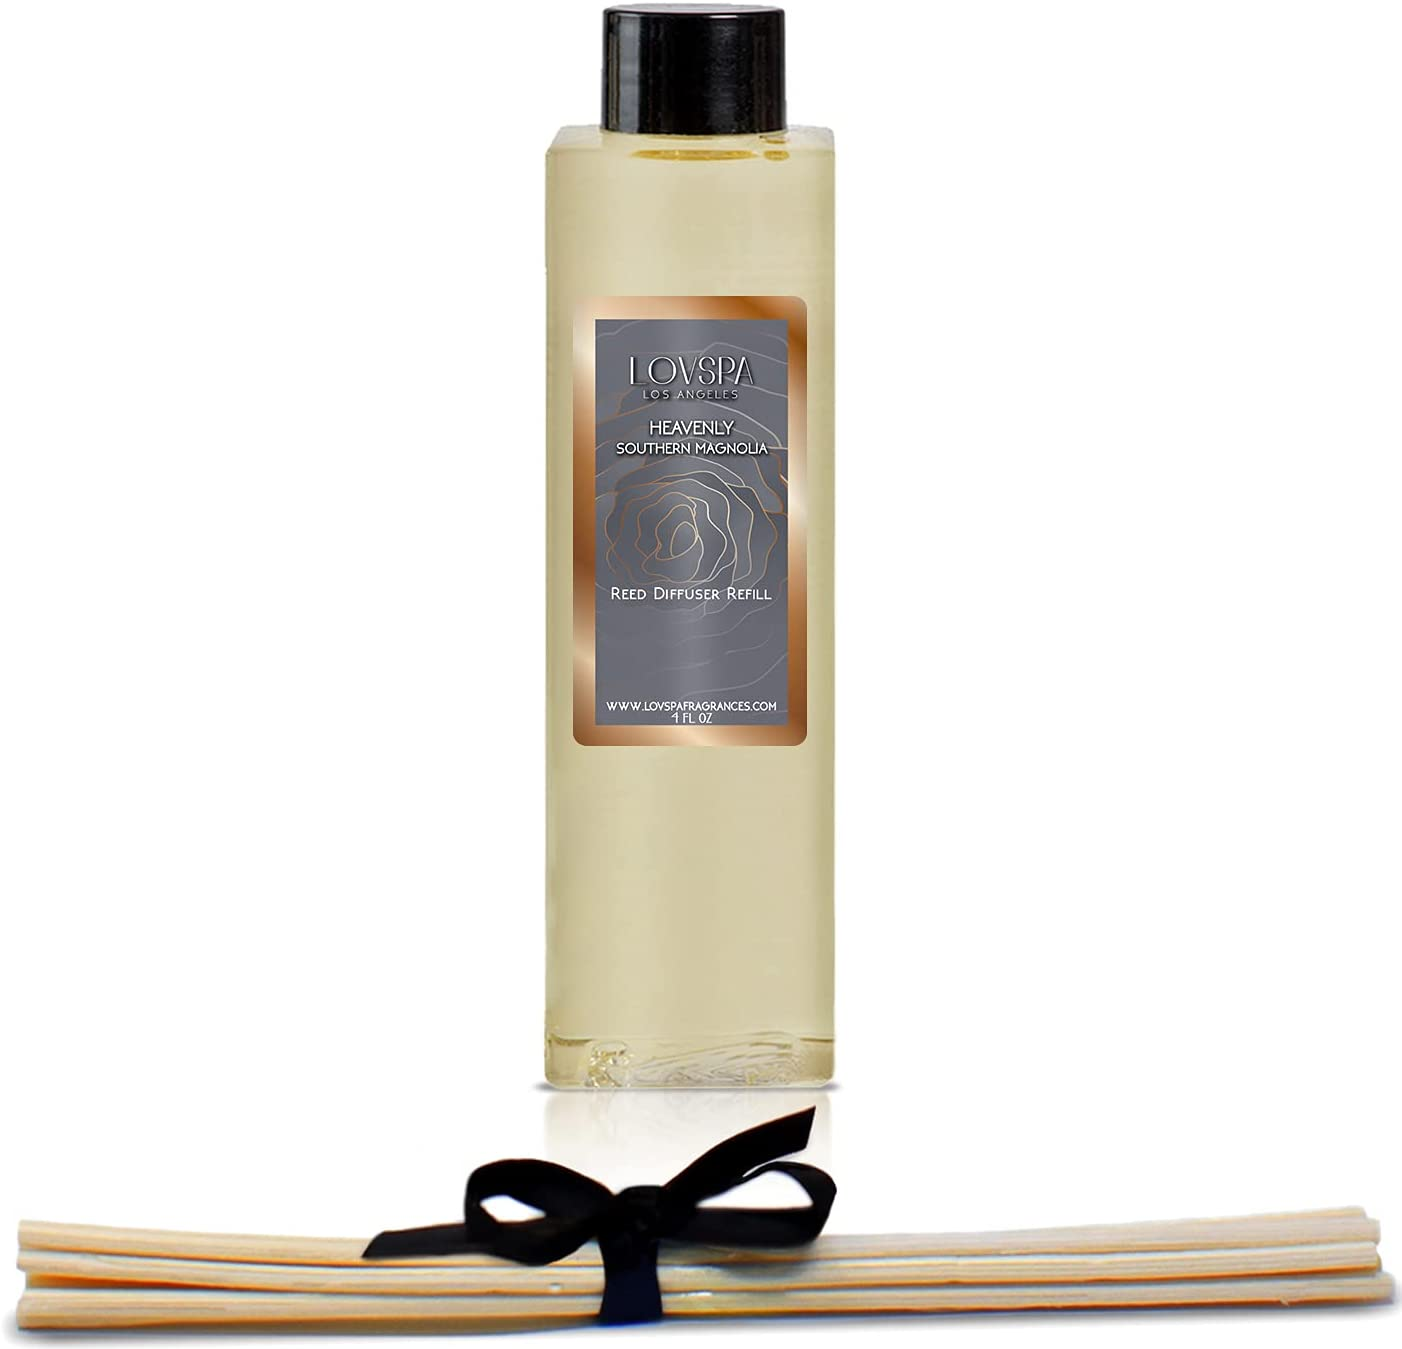 LOVSPA Heavenly Great interest Southern Magnolia Cheap SALE Start Reed Oil with Diffuser Refill